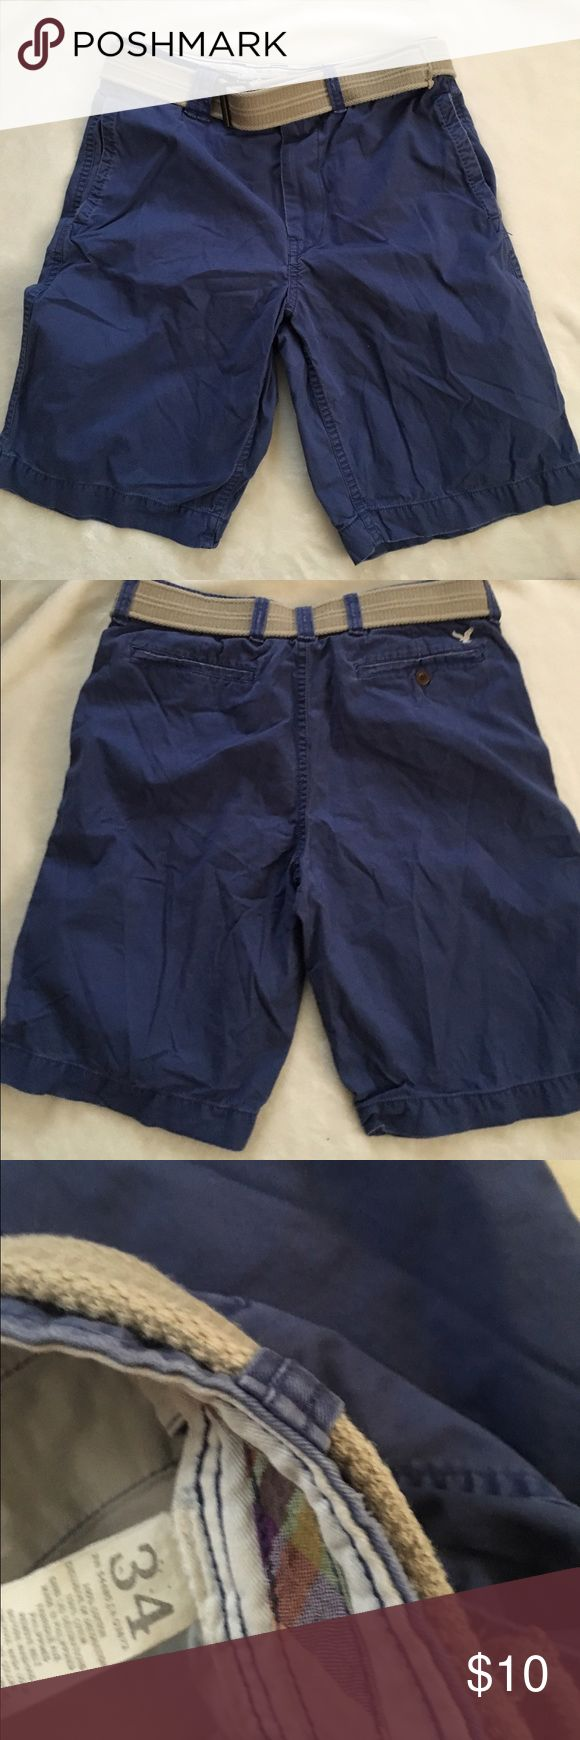 American Eagle shorts American Eagle Shorts, size 34 American Eagle Outfitters Shorts Flat Front